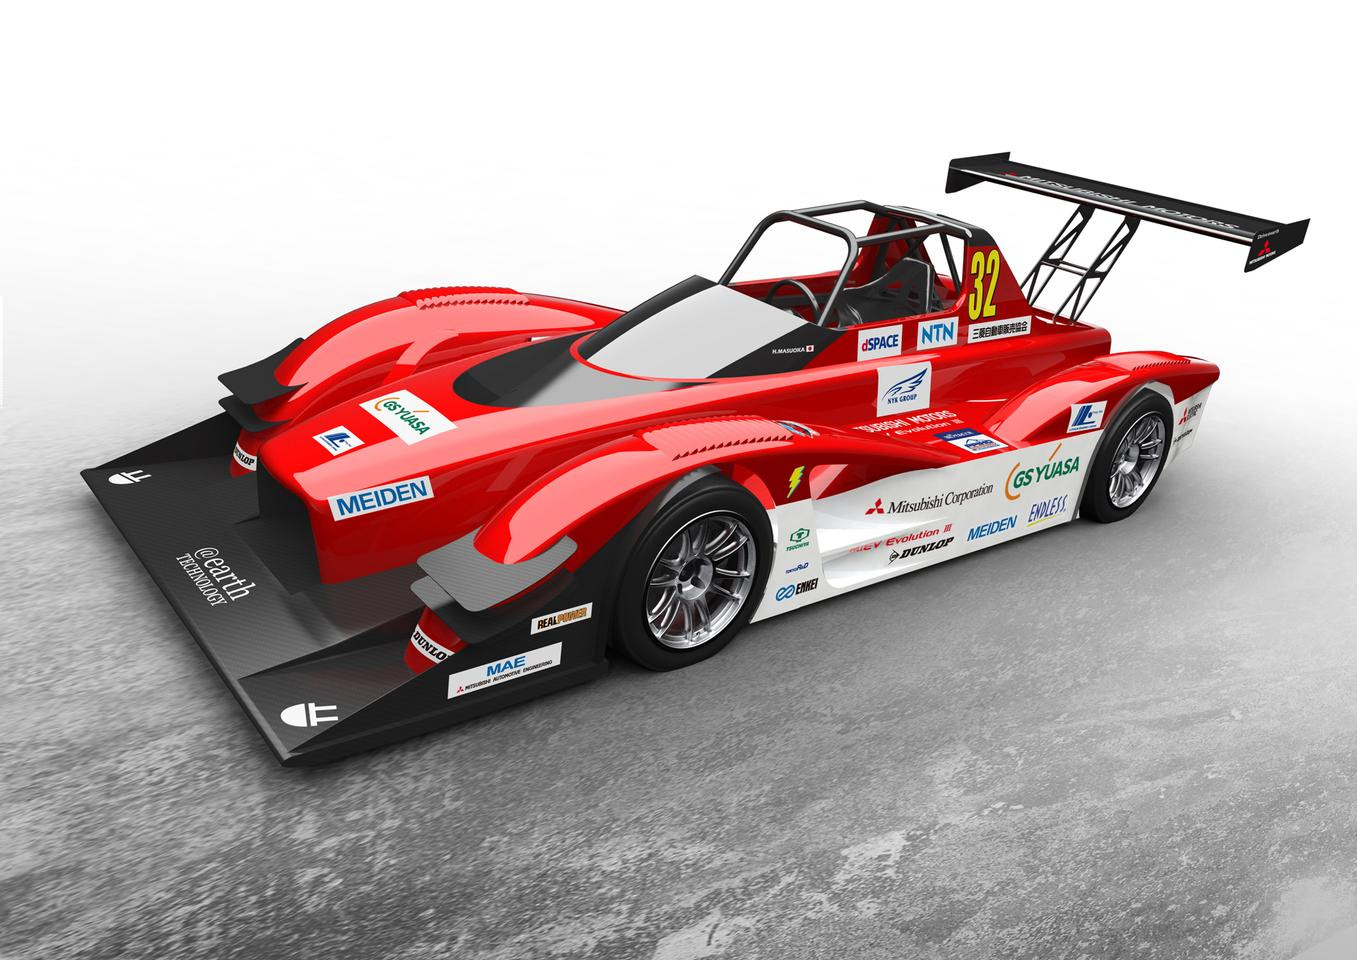 The MiEV Evolution III gets more power, improved aerodynamics and other upgrades